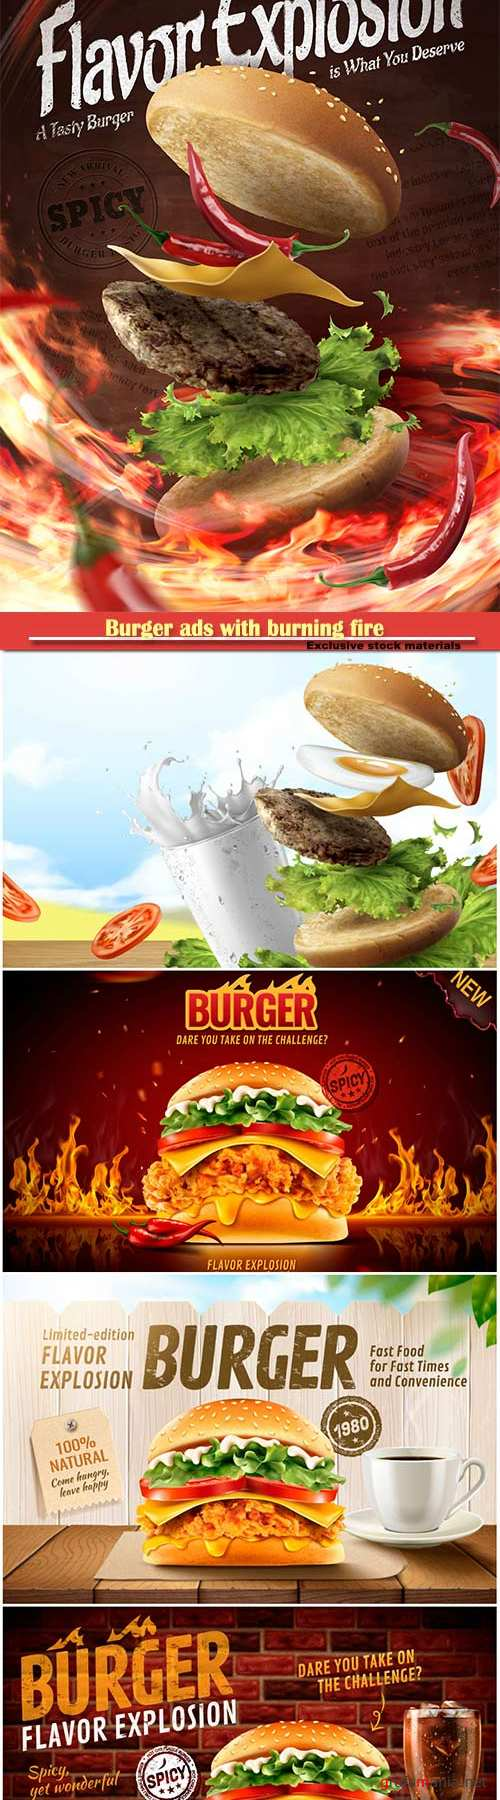 Burger ads with burning fire and set menu in 3d illustration